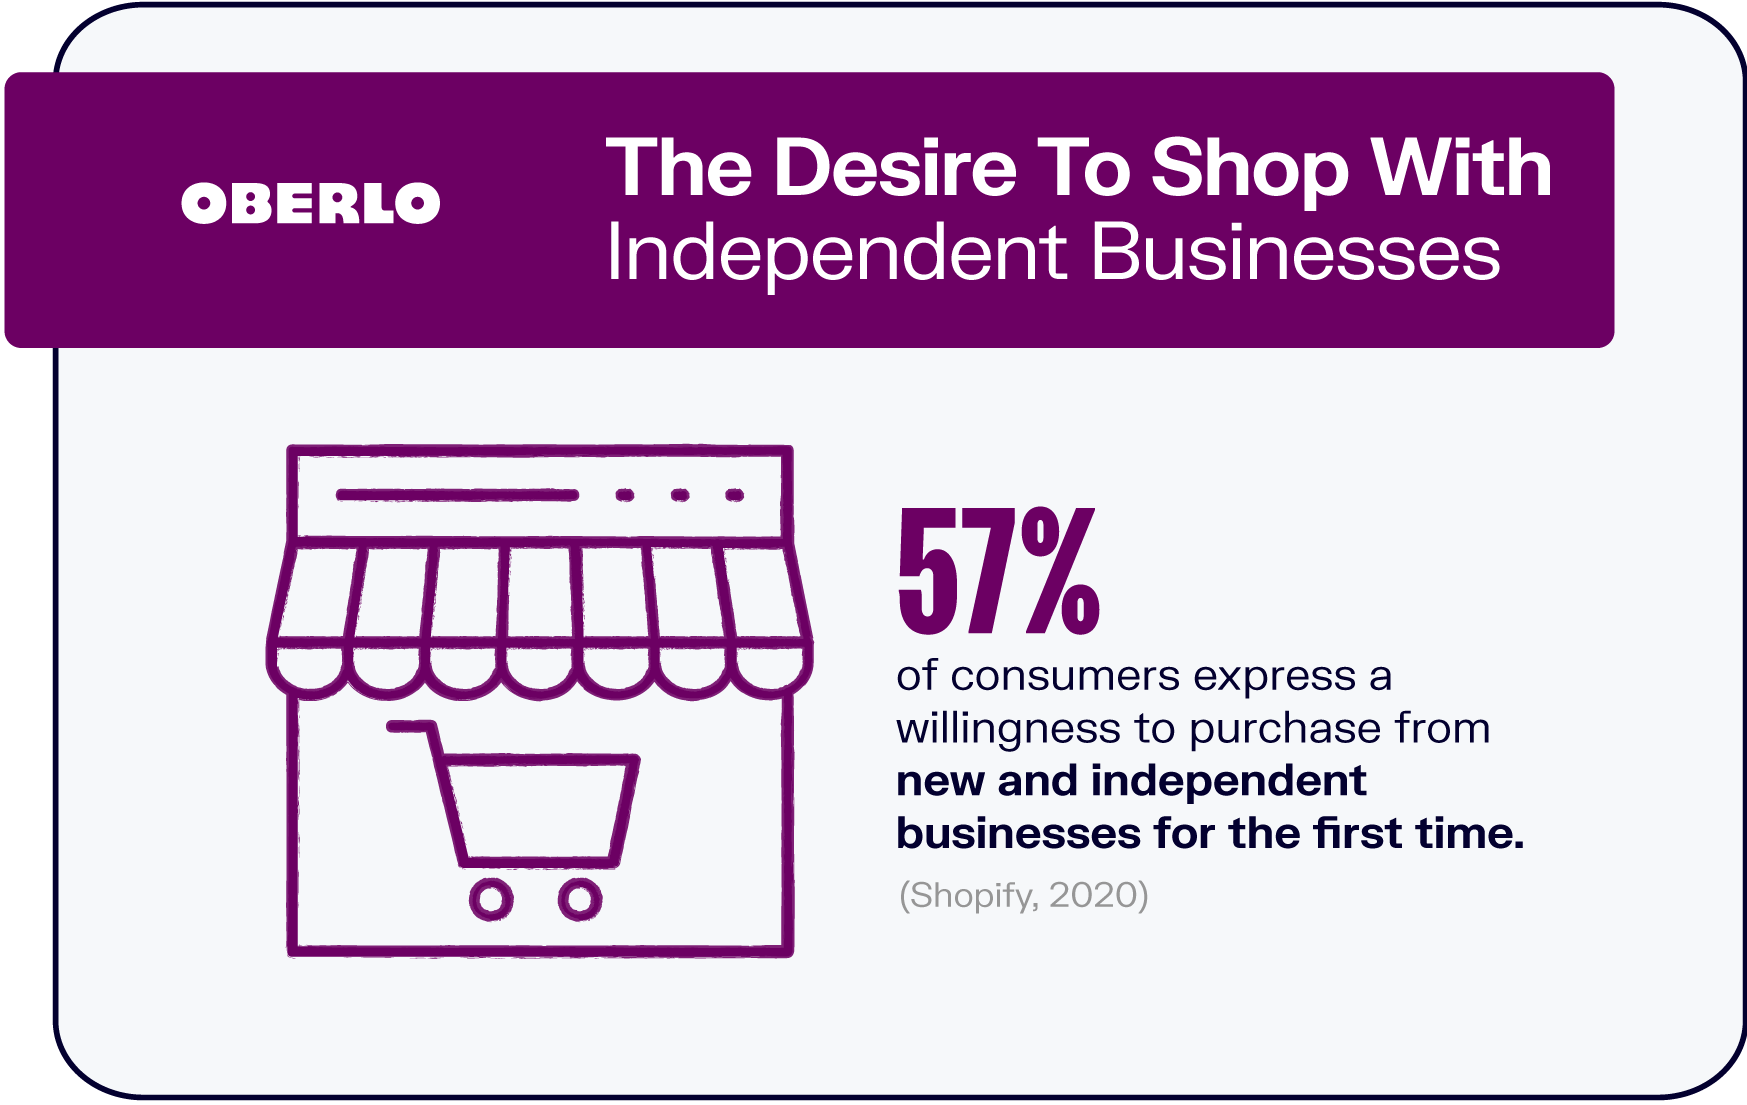 The Desire To Shop With Independent Businesses